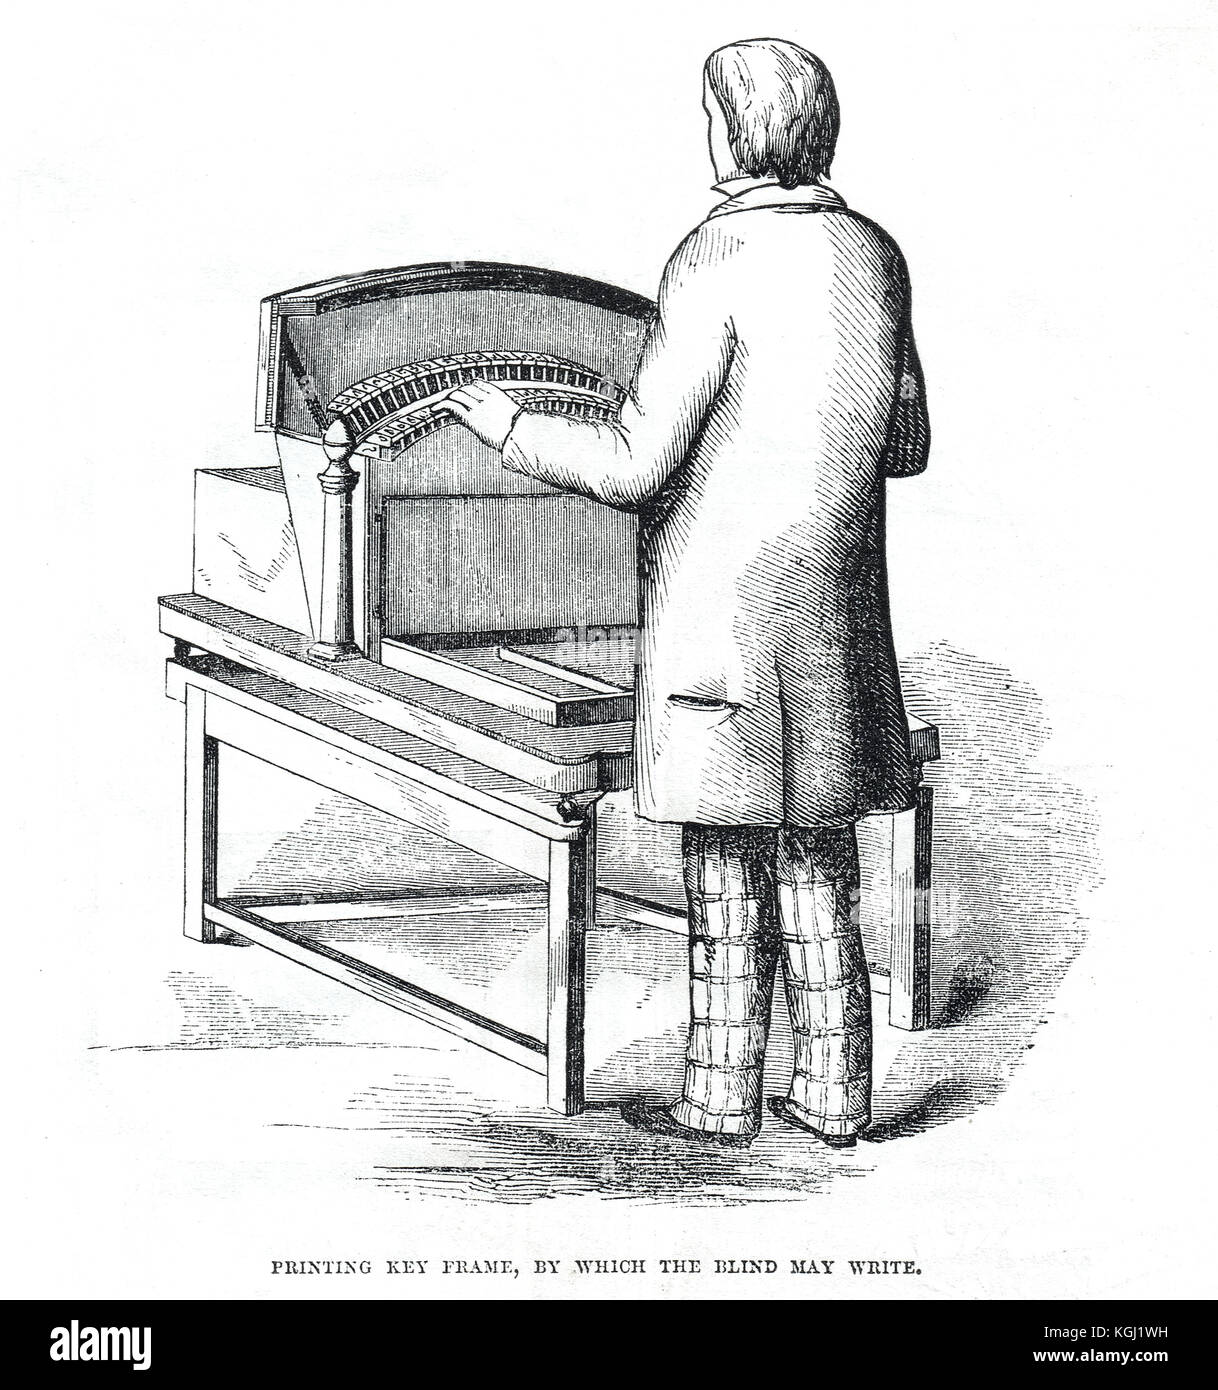 Printing key frame Foucault's Typewriter for the blind, Great Exhibition of 1851 - Stock Image